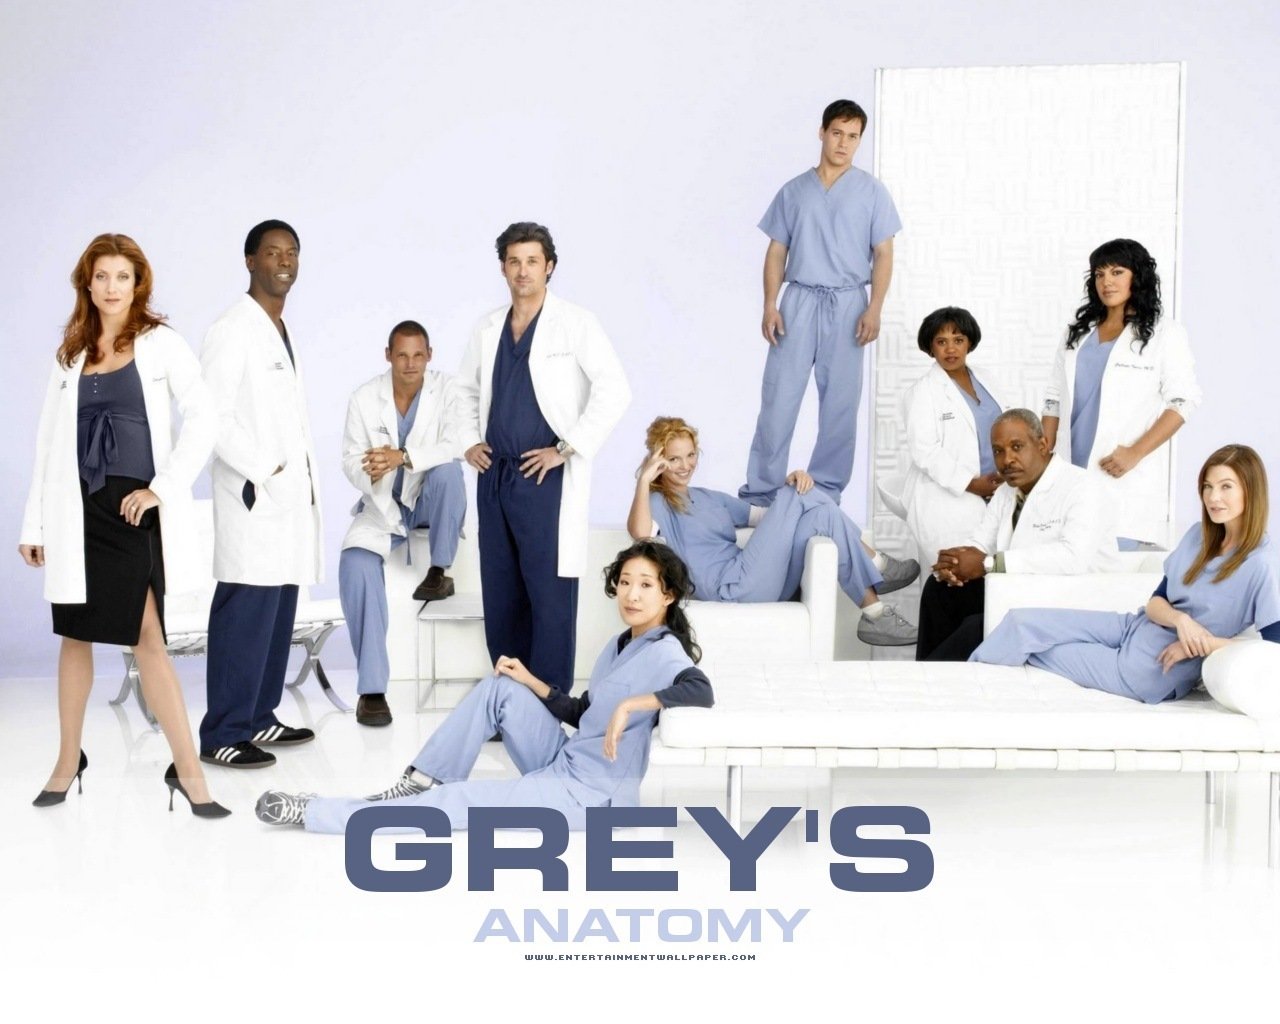 Grey's Anatomy's best Quotes from IMDB & Wiki | letmeget.com